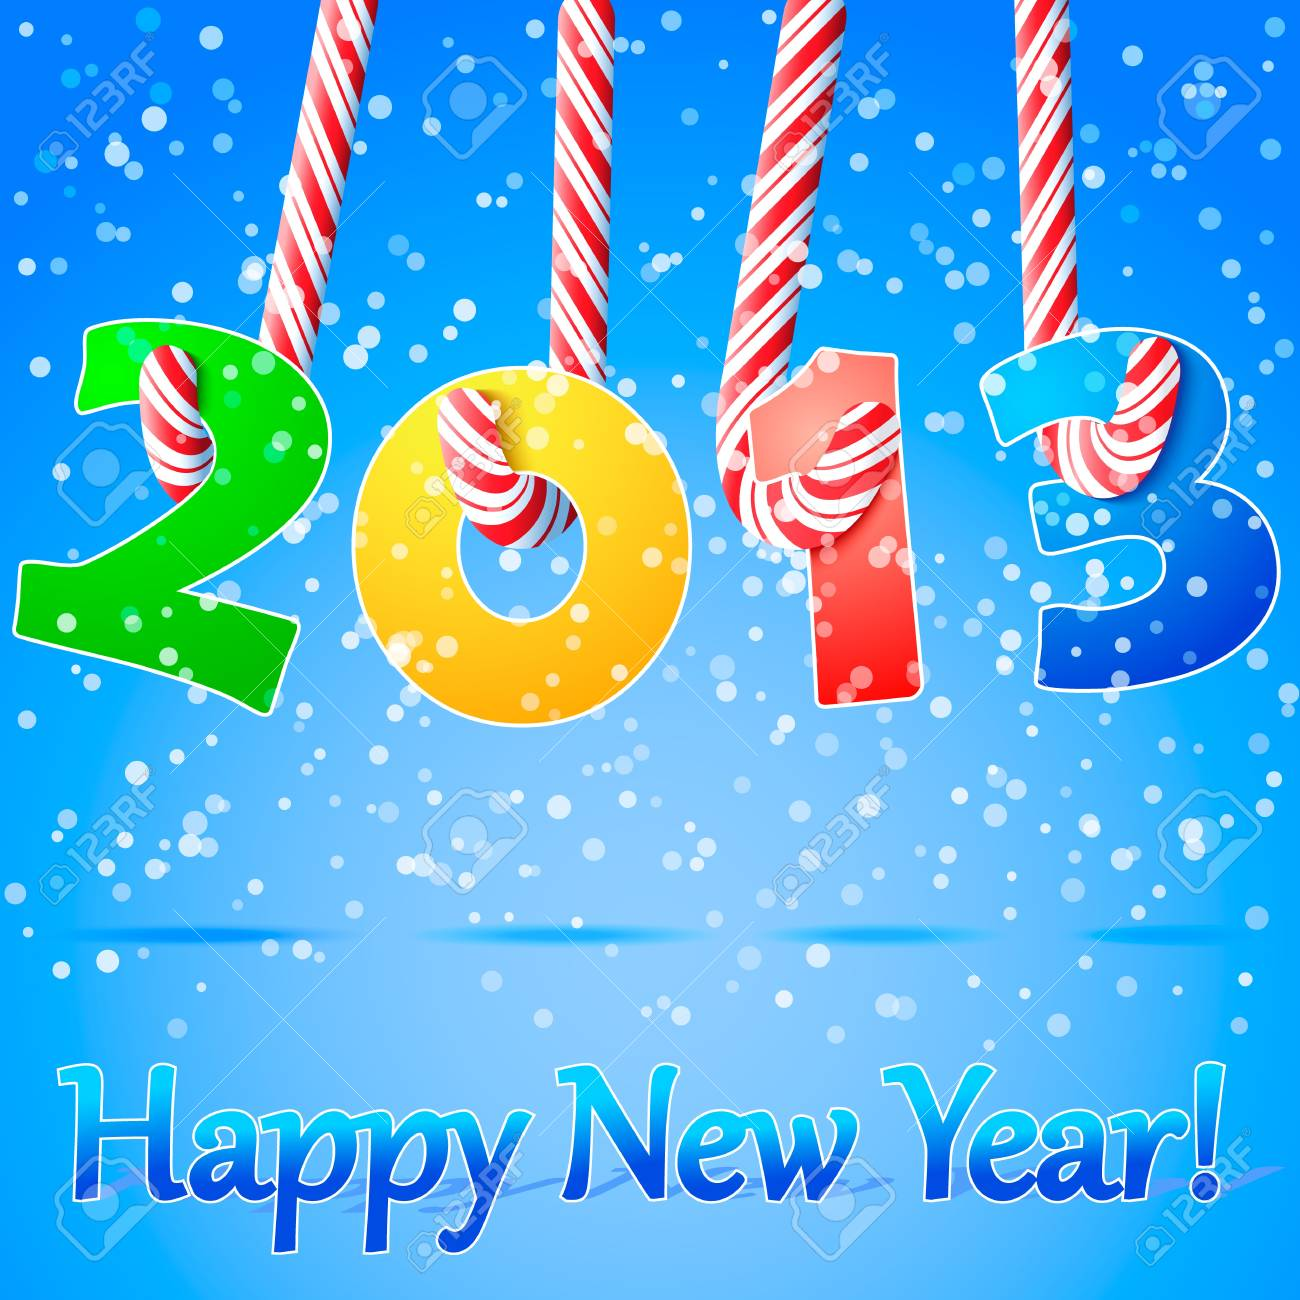 2013 Happy New Year background Stock Vector - 16484227